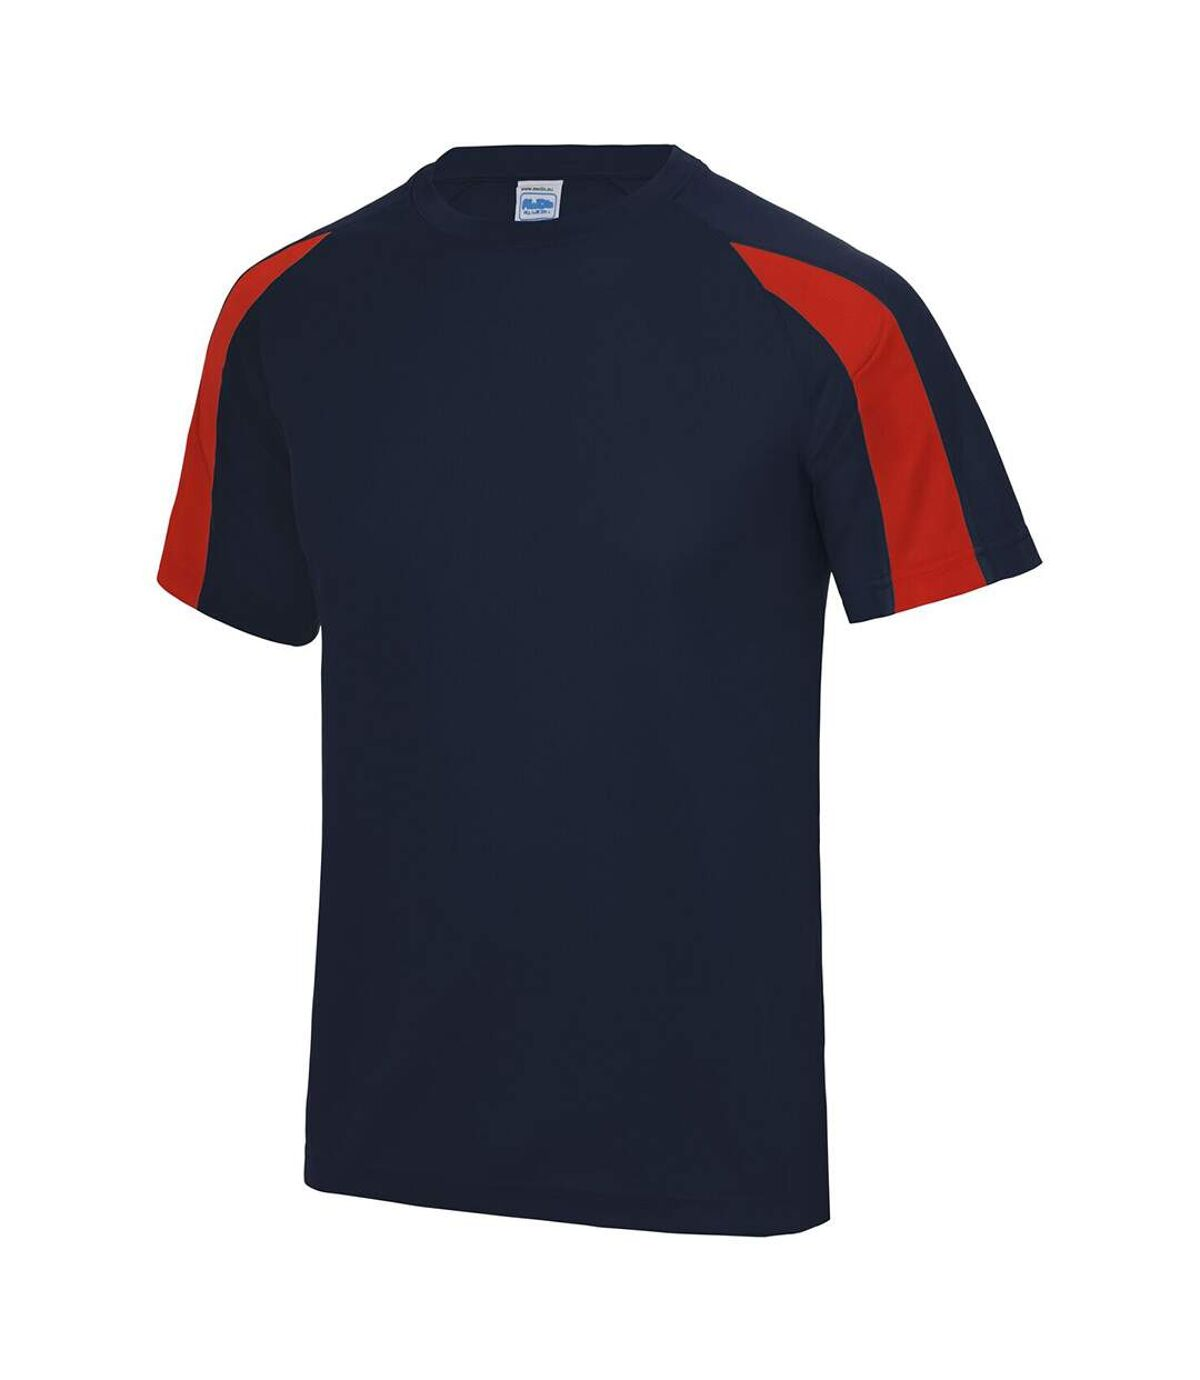 Just Cool Mens Contrast Cool Sports Plain T-Shirt (French Navy/Fire Red) - UTRW685